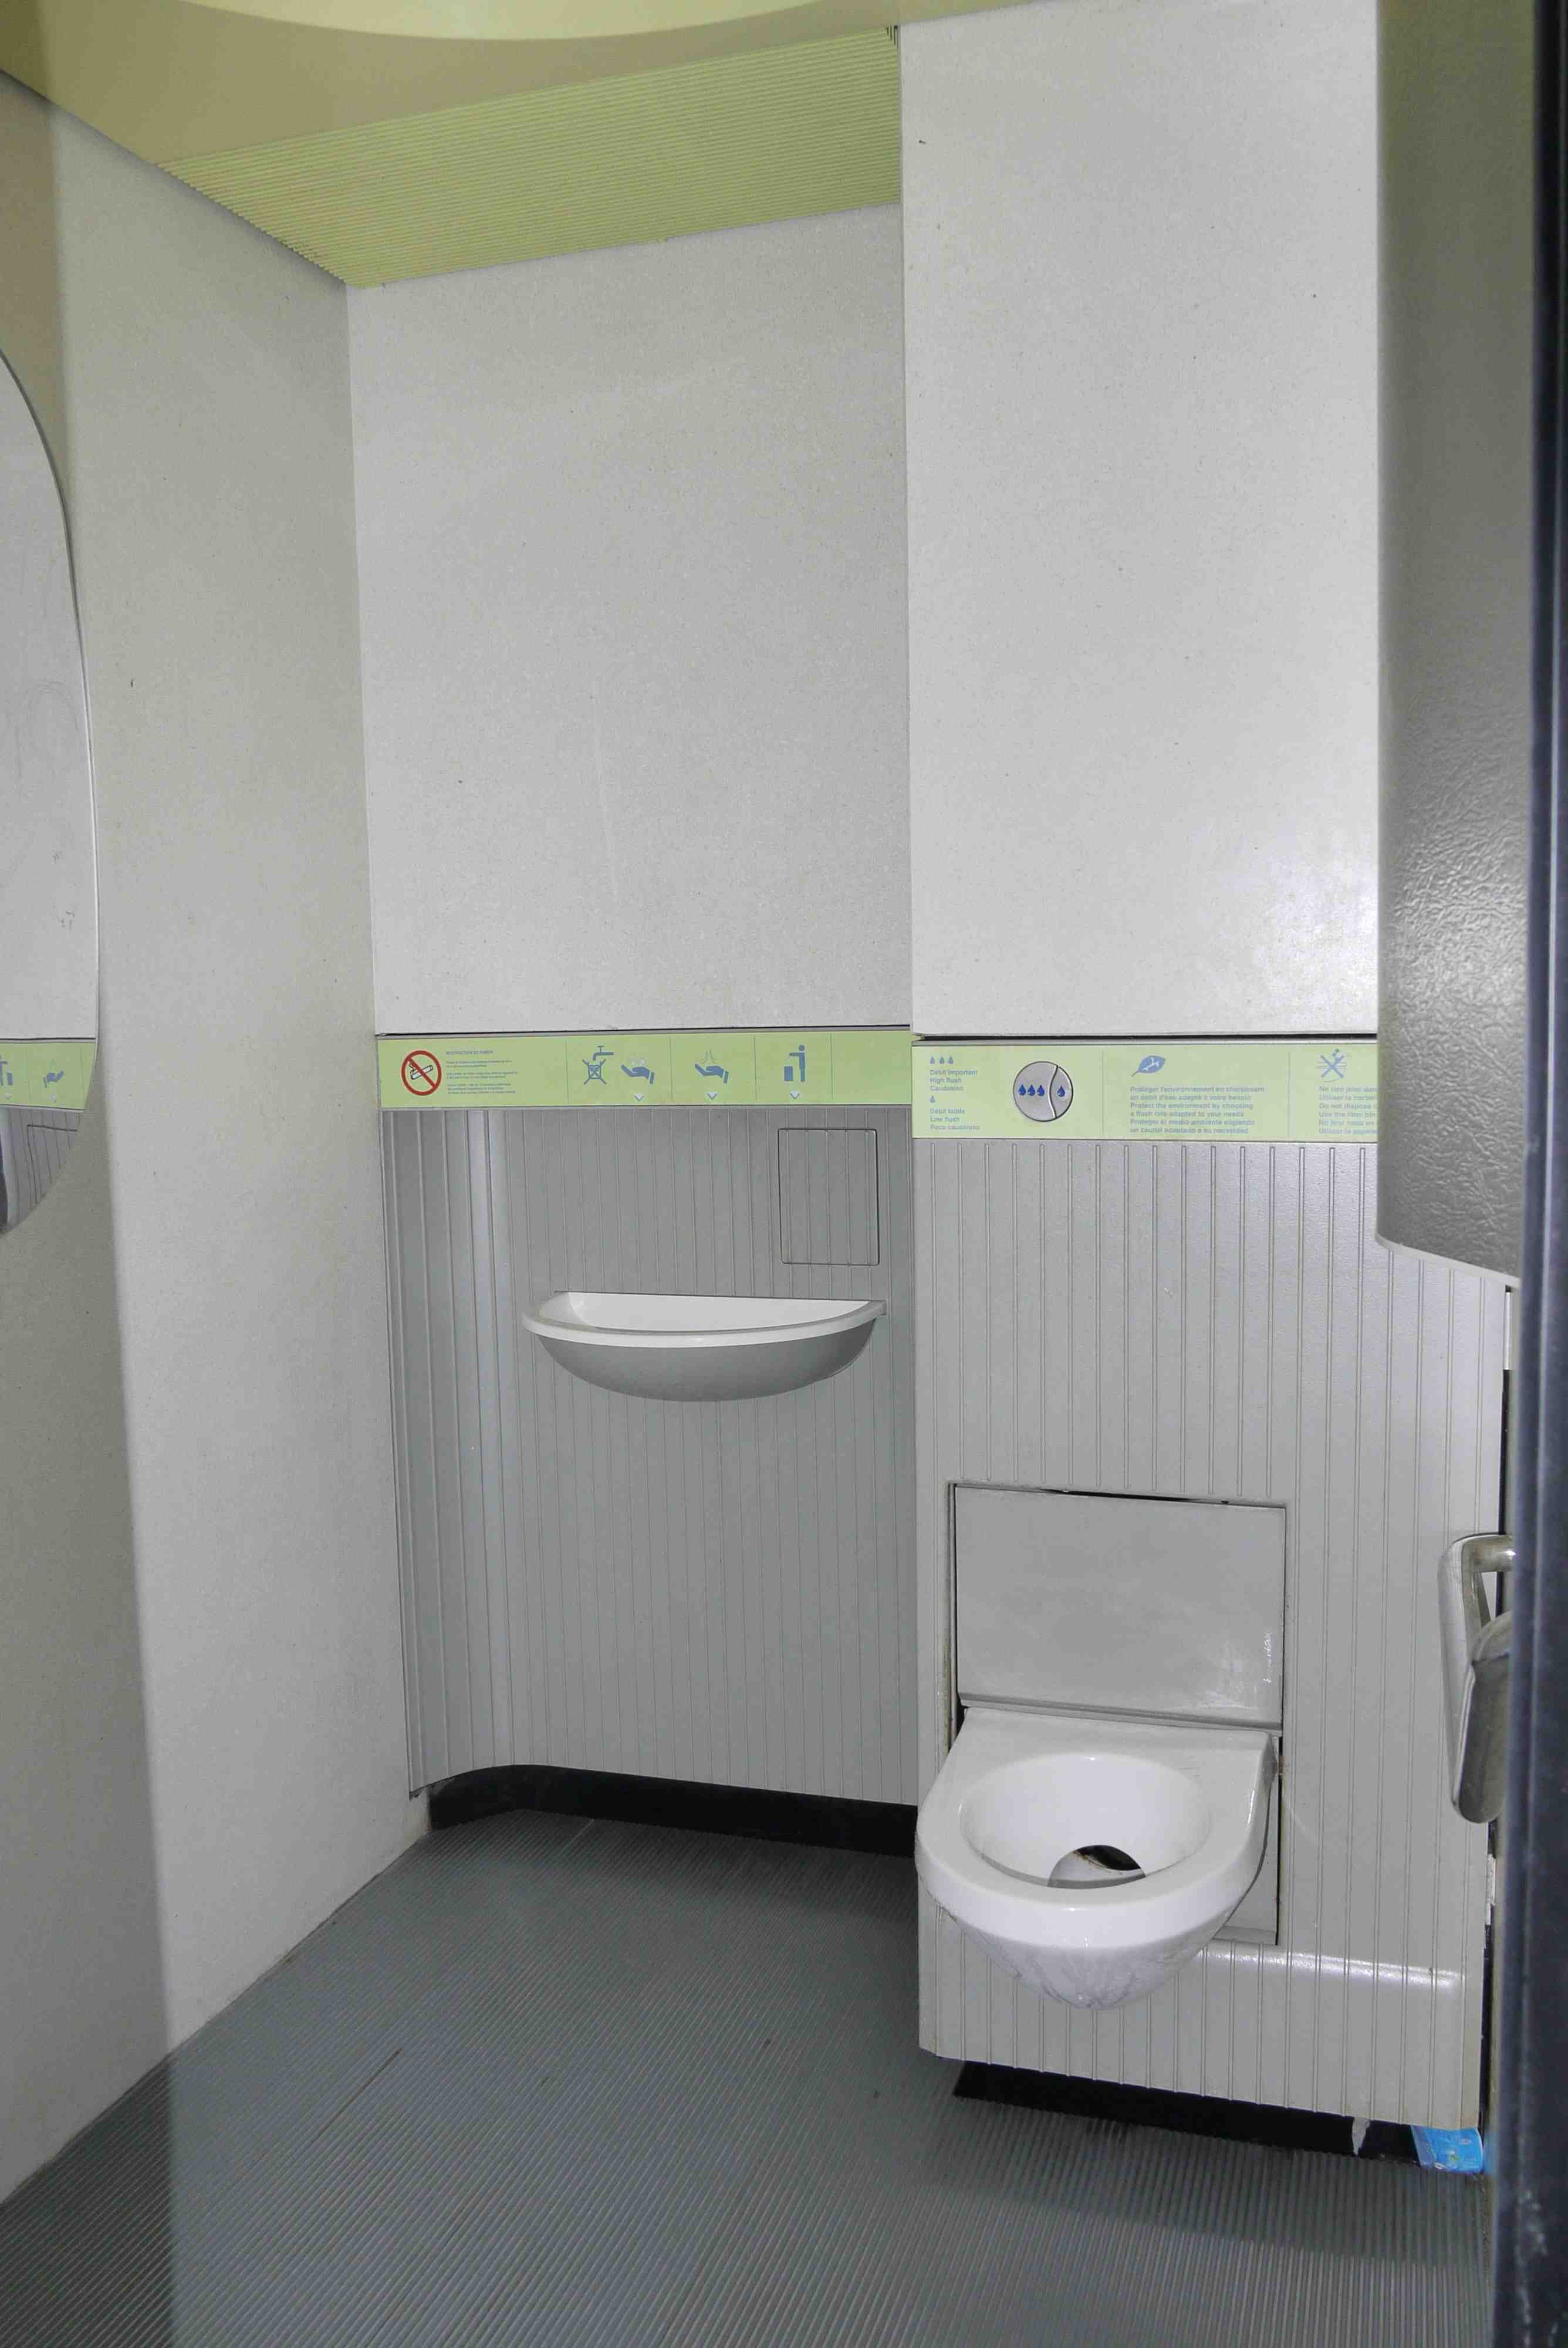 Paris toilets free and clean stylish or standard - Interiors commode ...